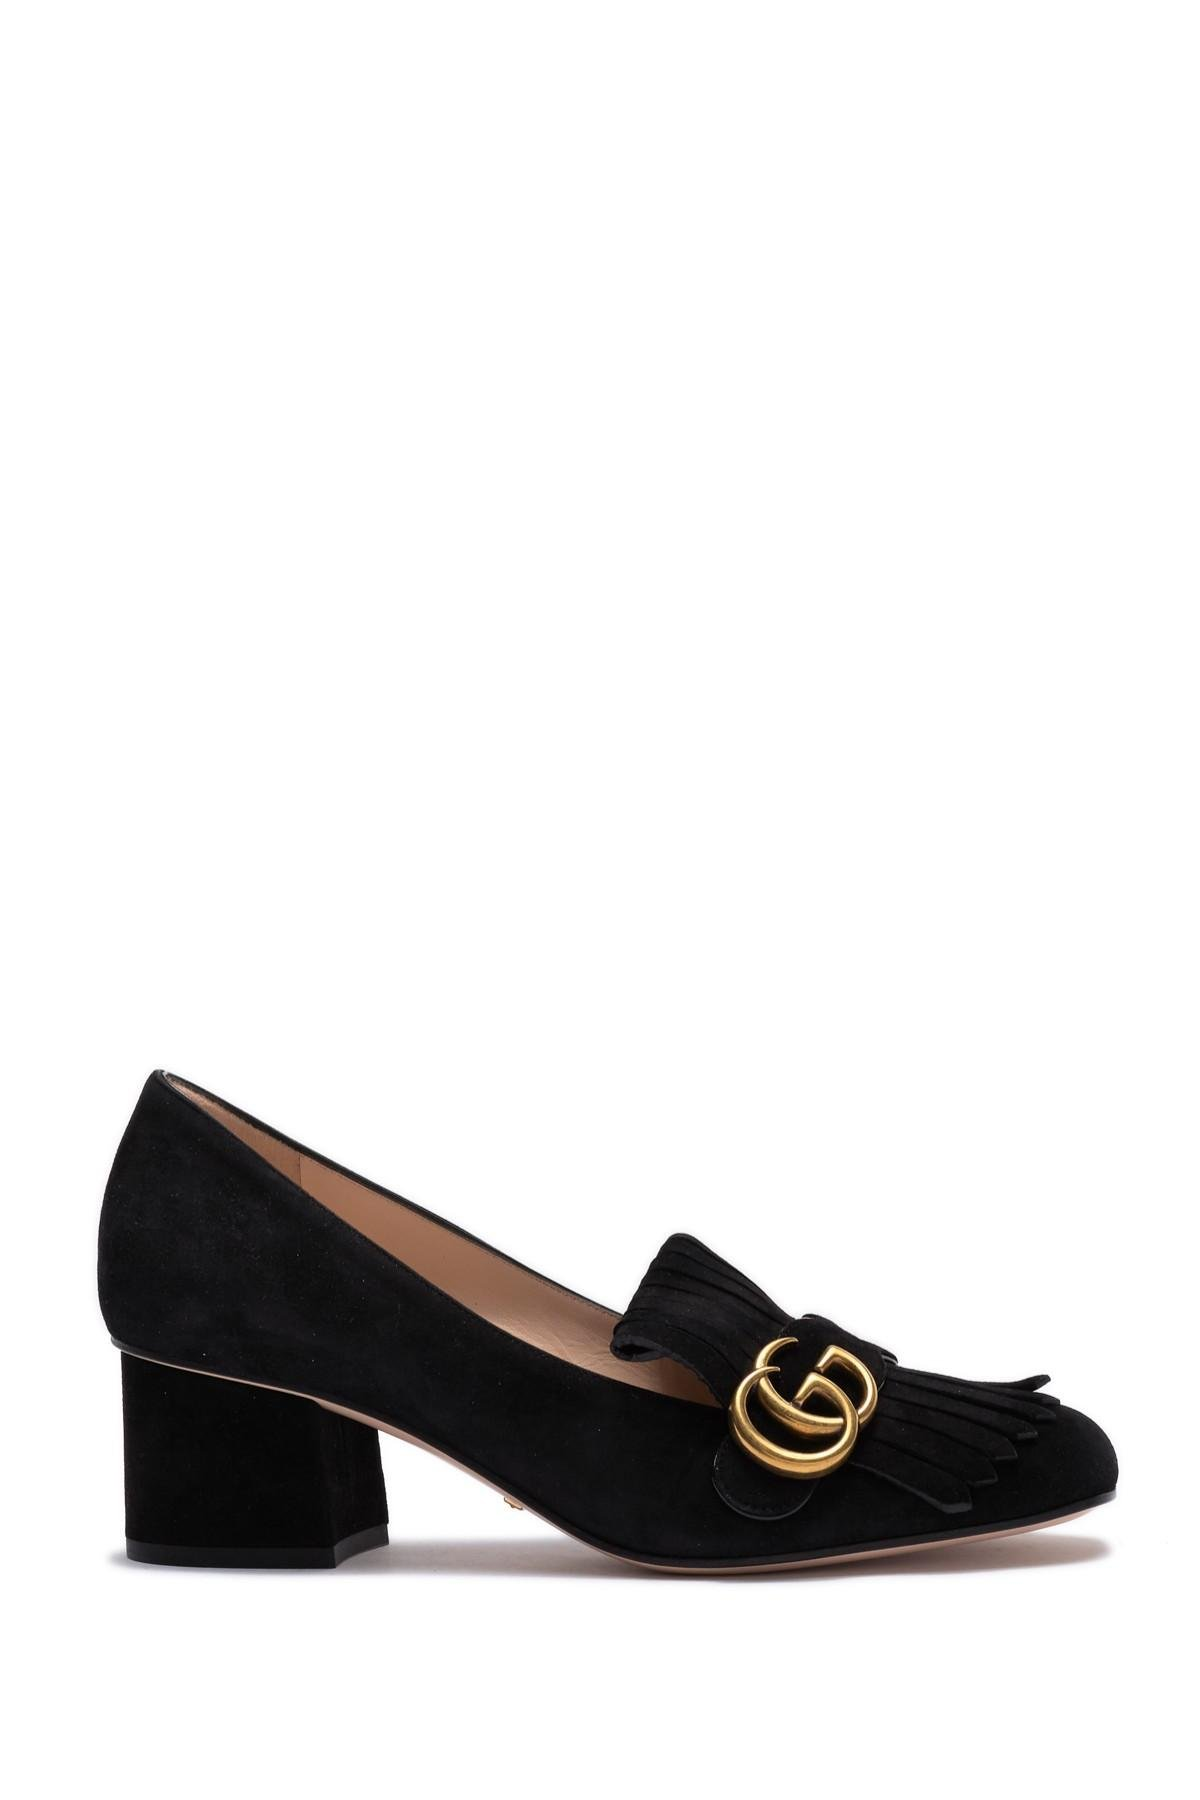 Gucci Marmont Leather Pumps in Silver